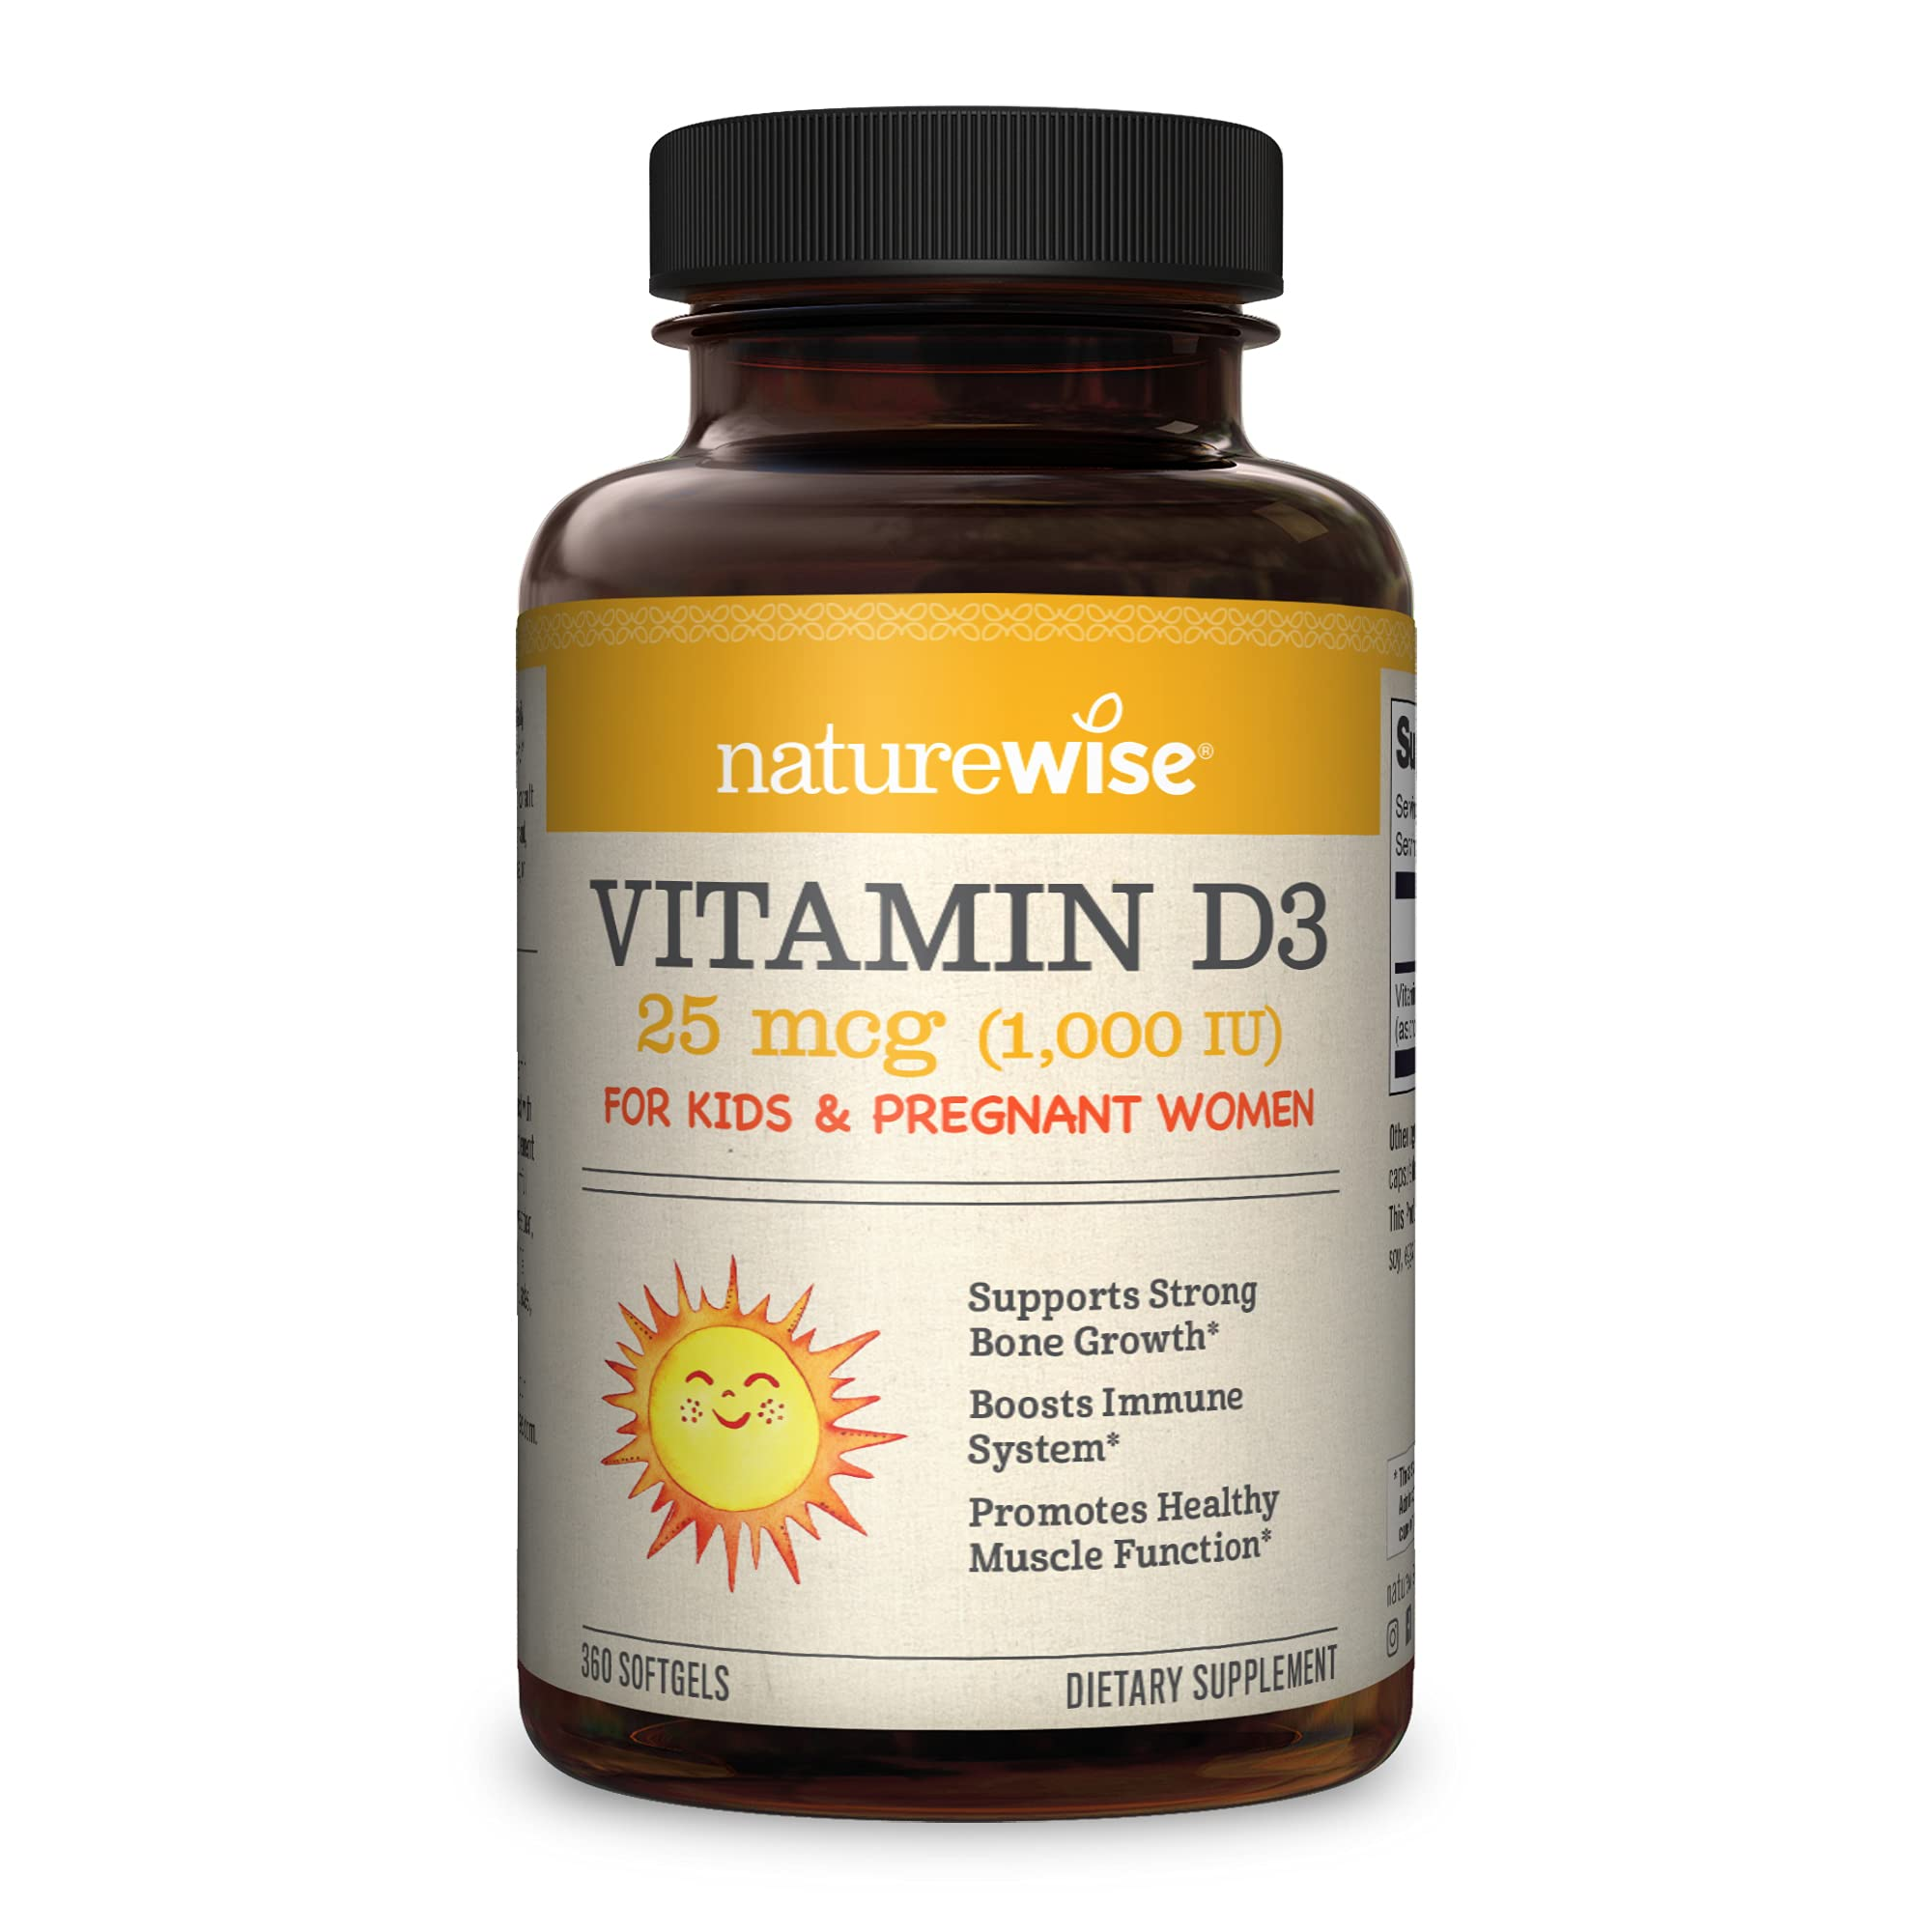 NatureWise Vitamin D3 1000IU (25 mcg), 1 Year Supply for Muscle Function, Bone Health, and Immune Support, Non-GMO, Gluten Free in Cold-Pressed Olive Oil, Packaging May Vary (360 Softgels)